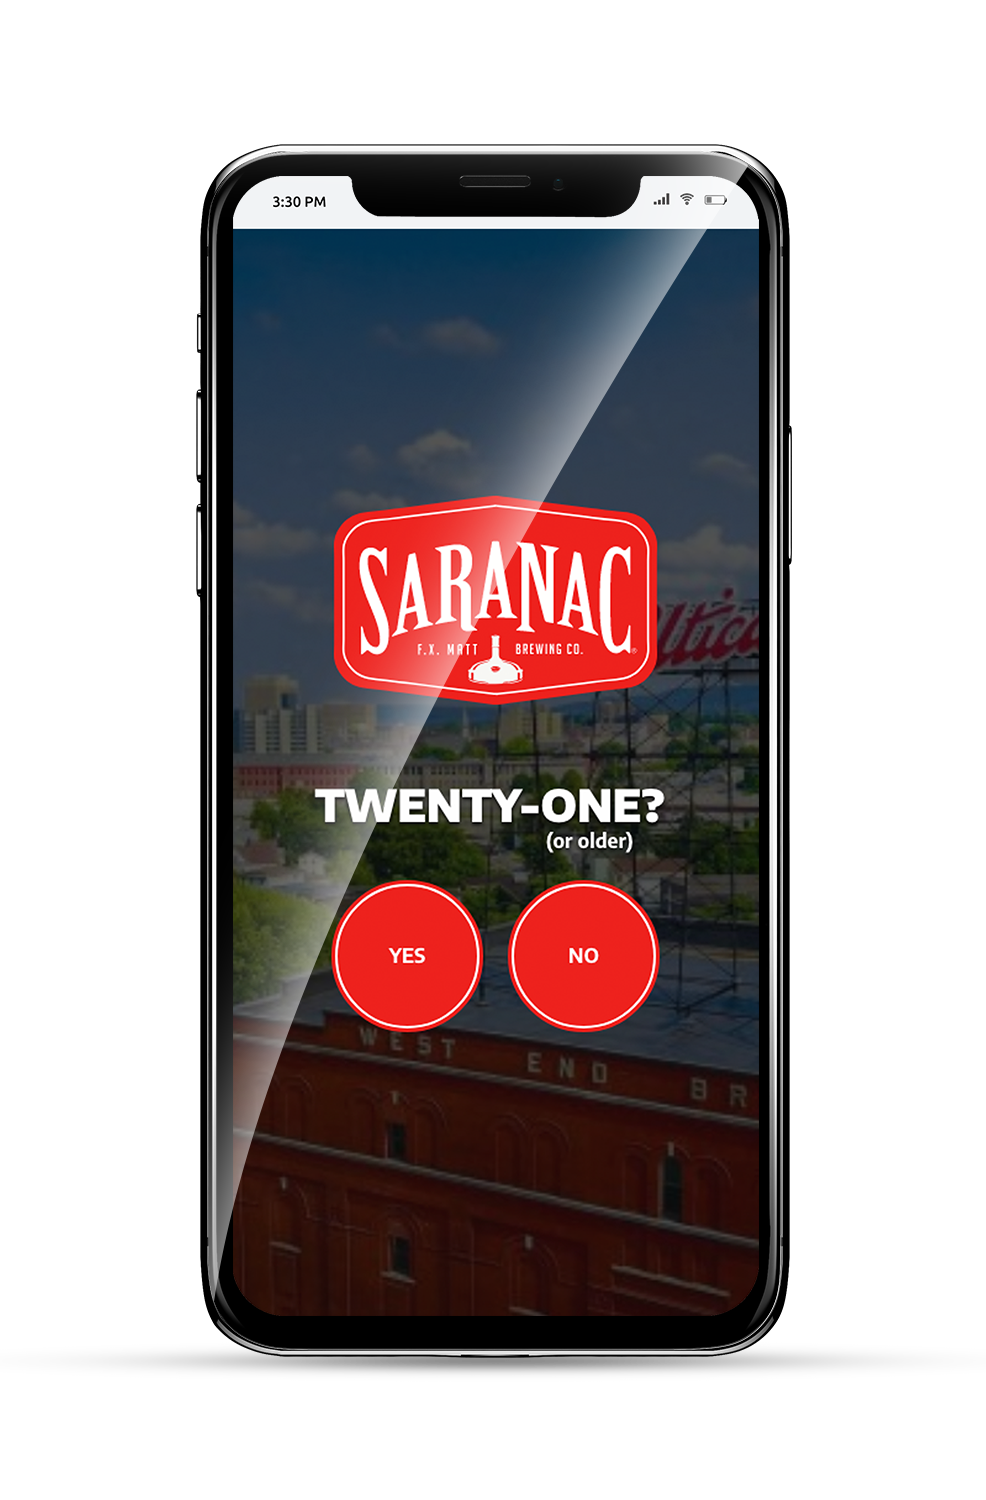 Saranac Brewery Mobile Age Gate